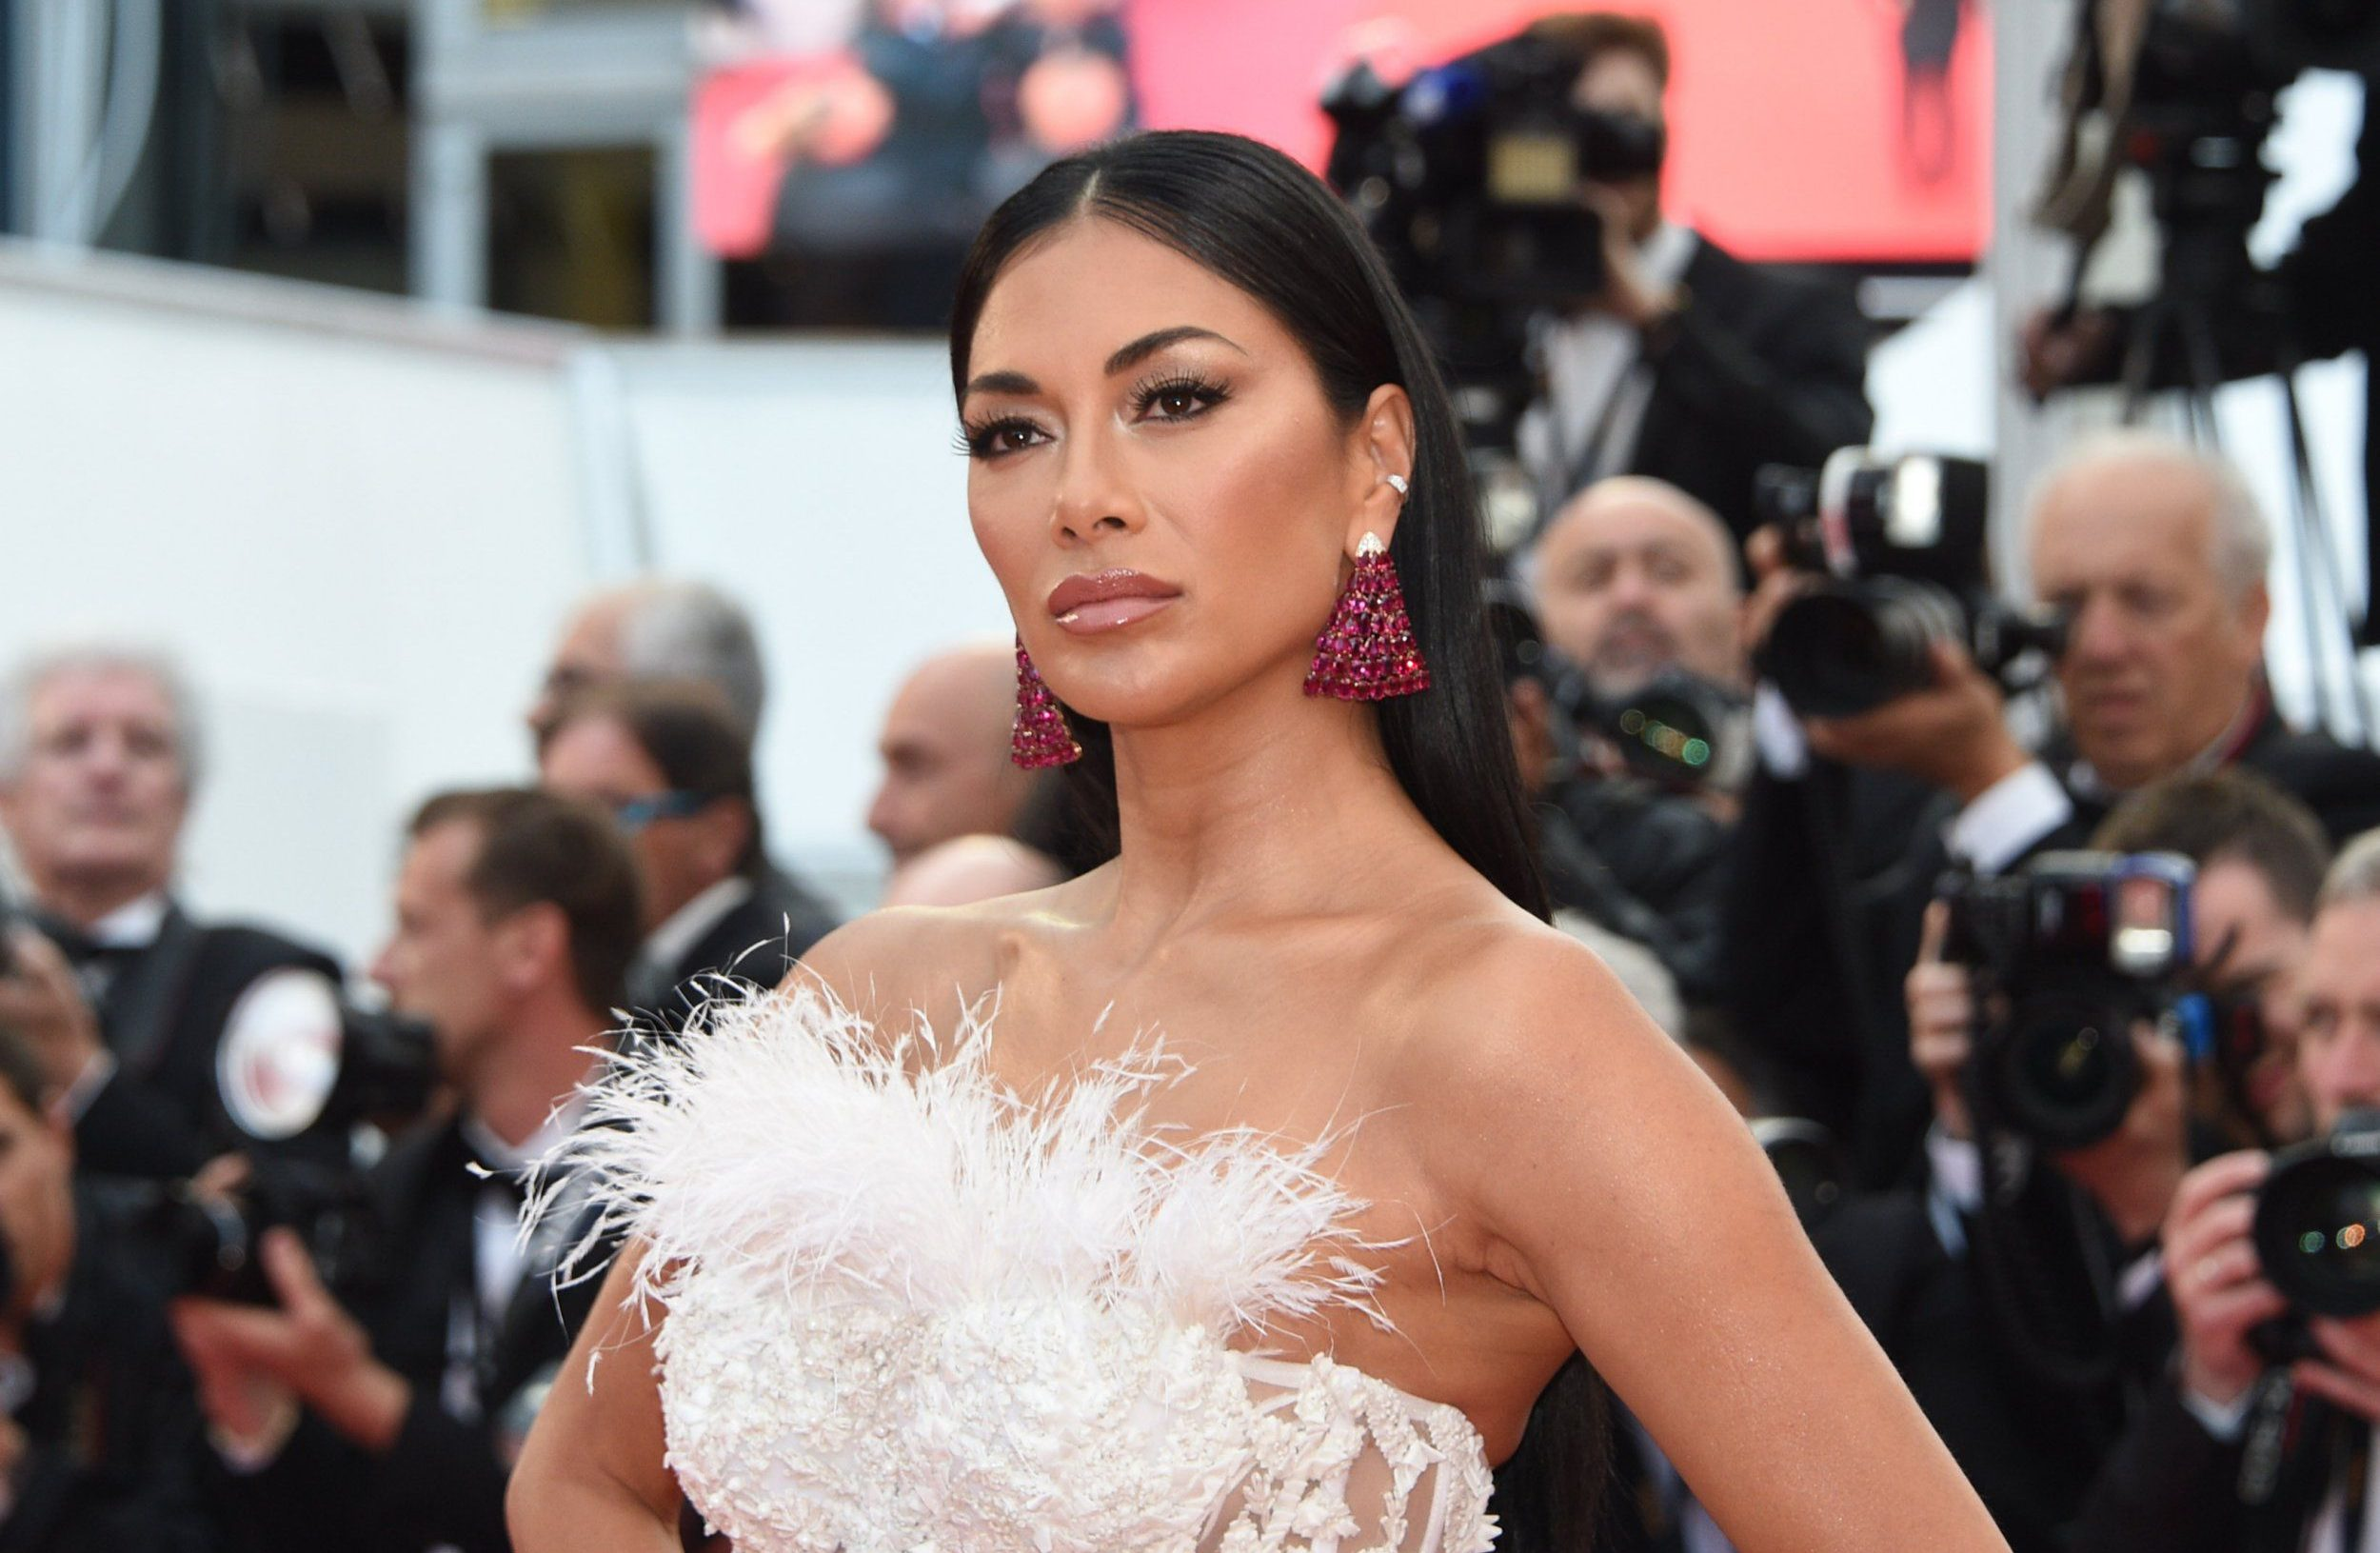 """CANNES, FRANCE - MAY 14: Nicole Scherzinger attends the screening of """"Blackkklansman"""" during the 71st annual Cannes Film Festival at Palais des Festivals on May 14, 2018 in Cannes, France. (Photo by Stephane Cardinale - Corbis/Corbis via Getty Images)"""